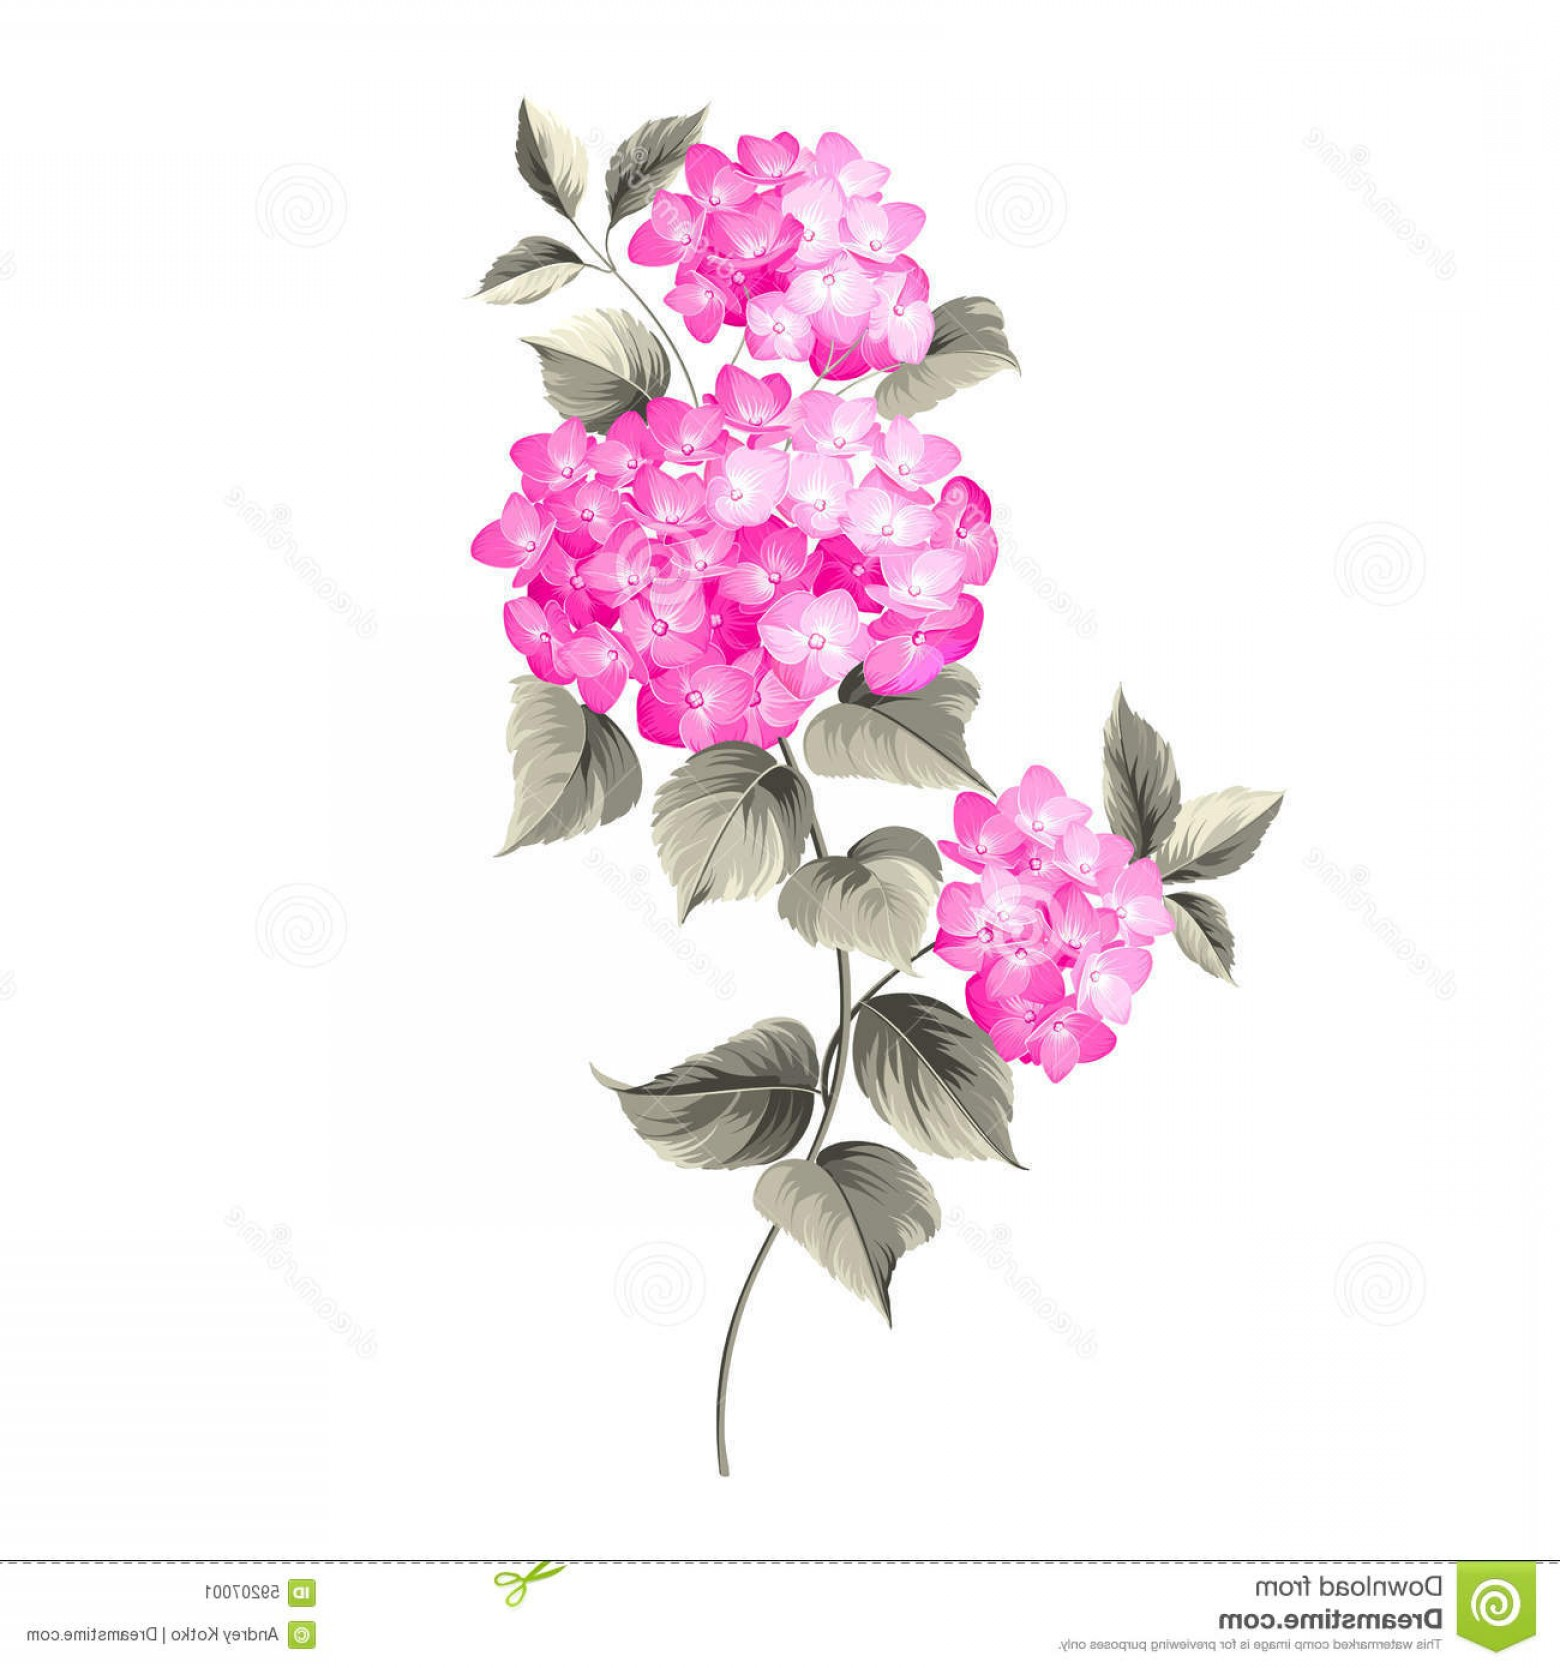 Vector Mop Flower: Stock Illustration Purple Flower Hydrangea White Background Mop Head Against White Vector Illustration Image